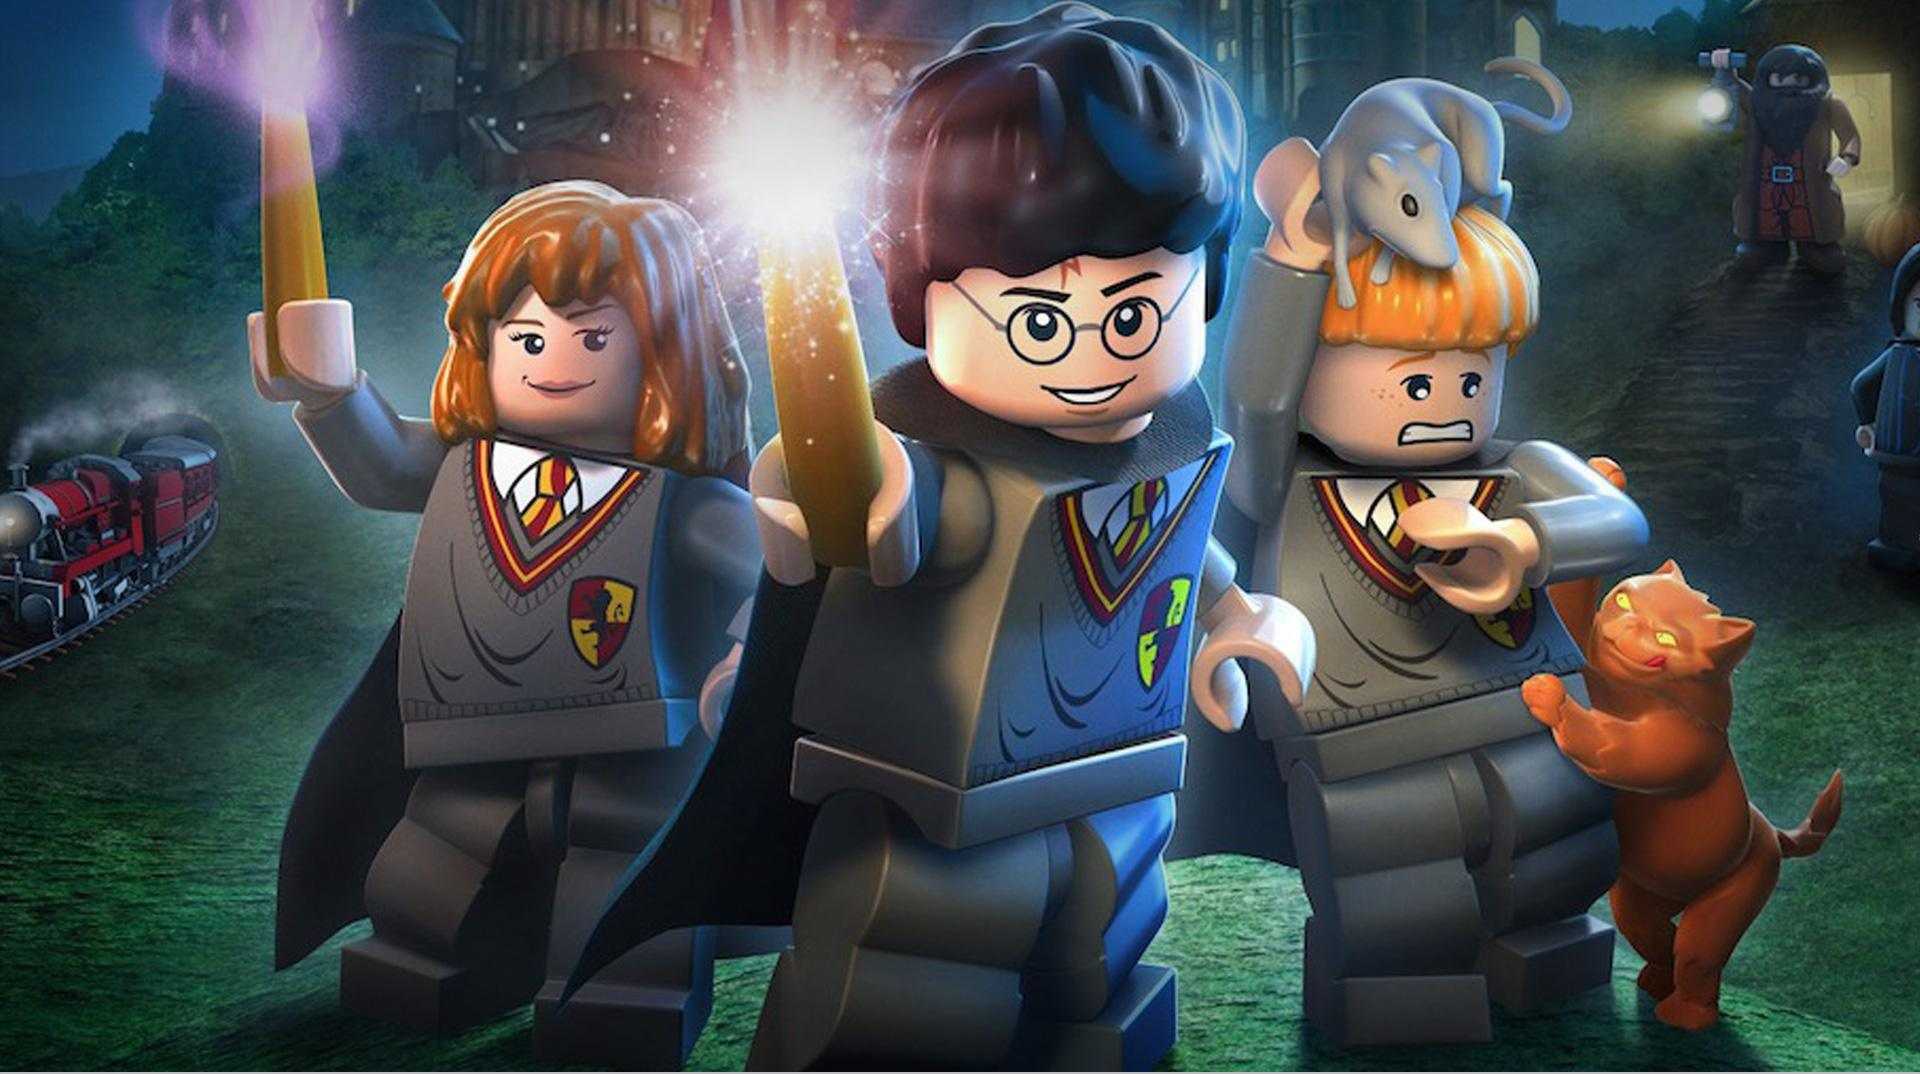 Download LEGO® Harry Potter: Years 1-4 on PC with BlueStacks